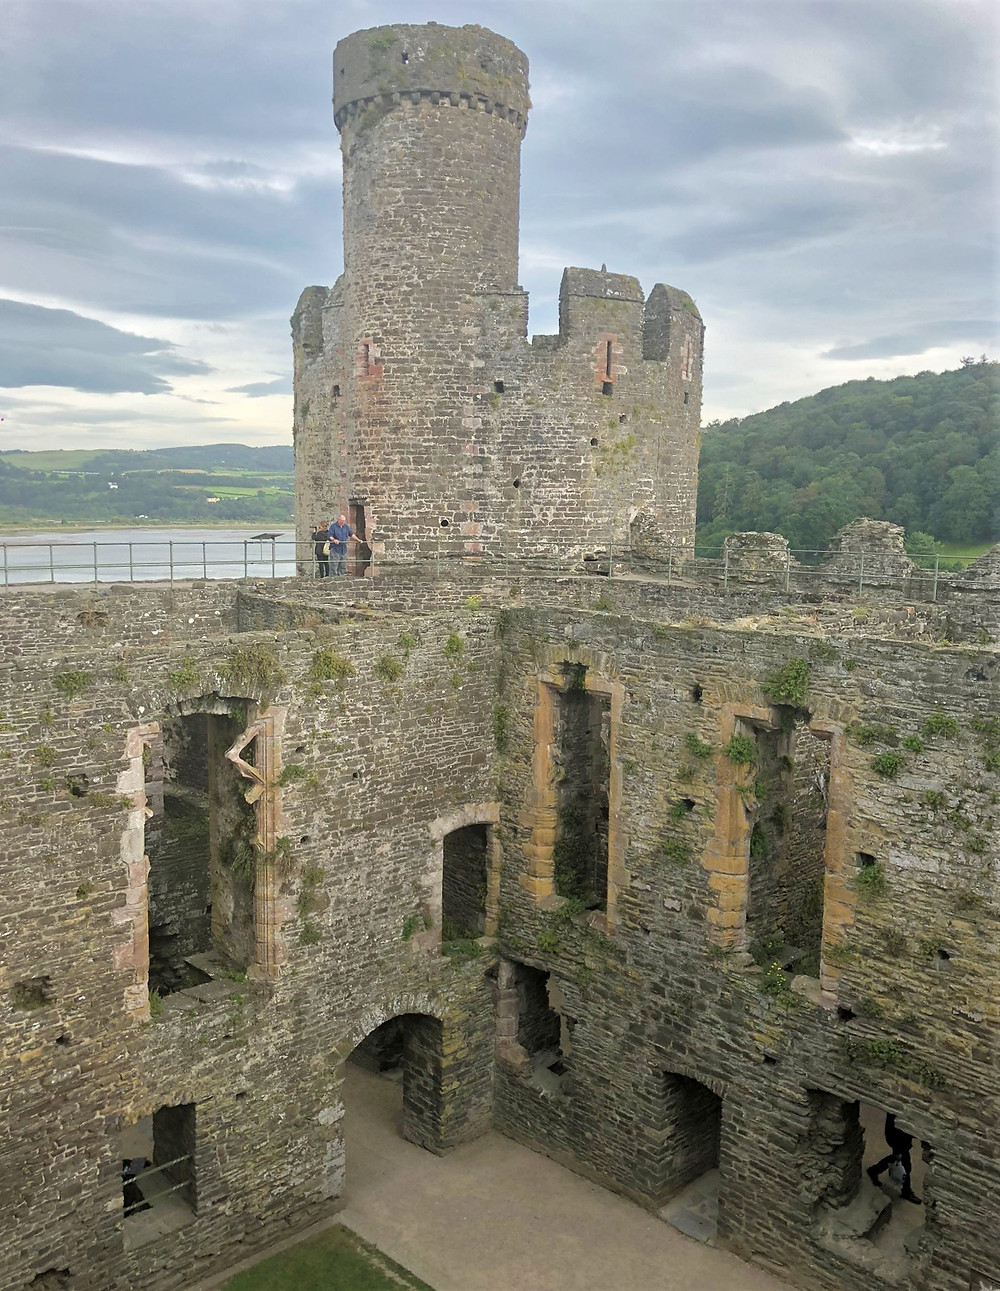 Royal Apartments in the Conwy Castle Inner Ward built by Edward I in 1280s